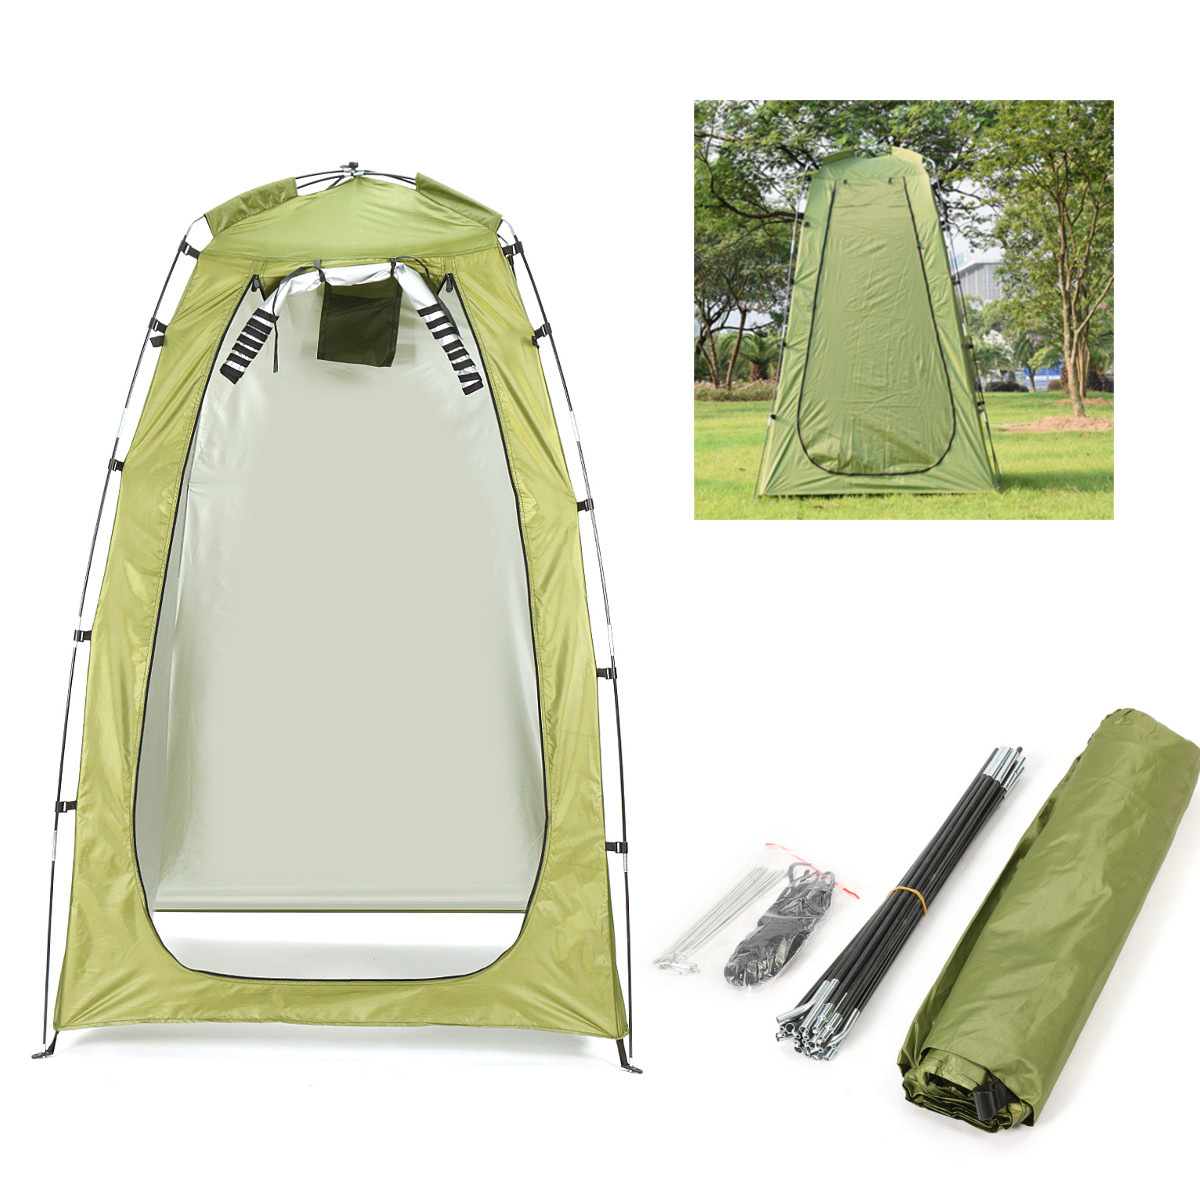 Outdoor Portable Fishing Tent Camping Shower Bathroom T